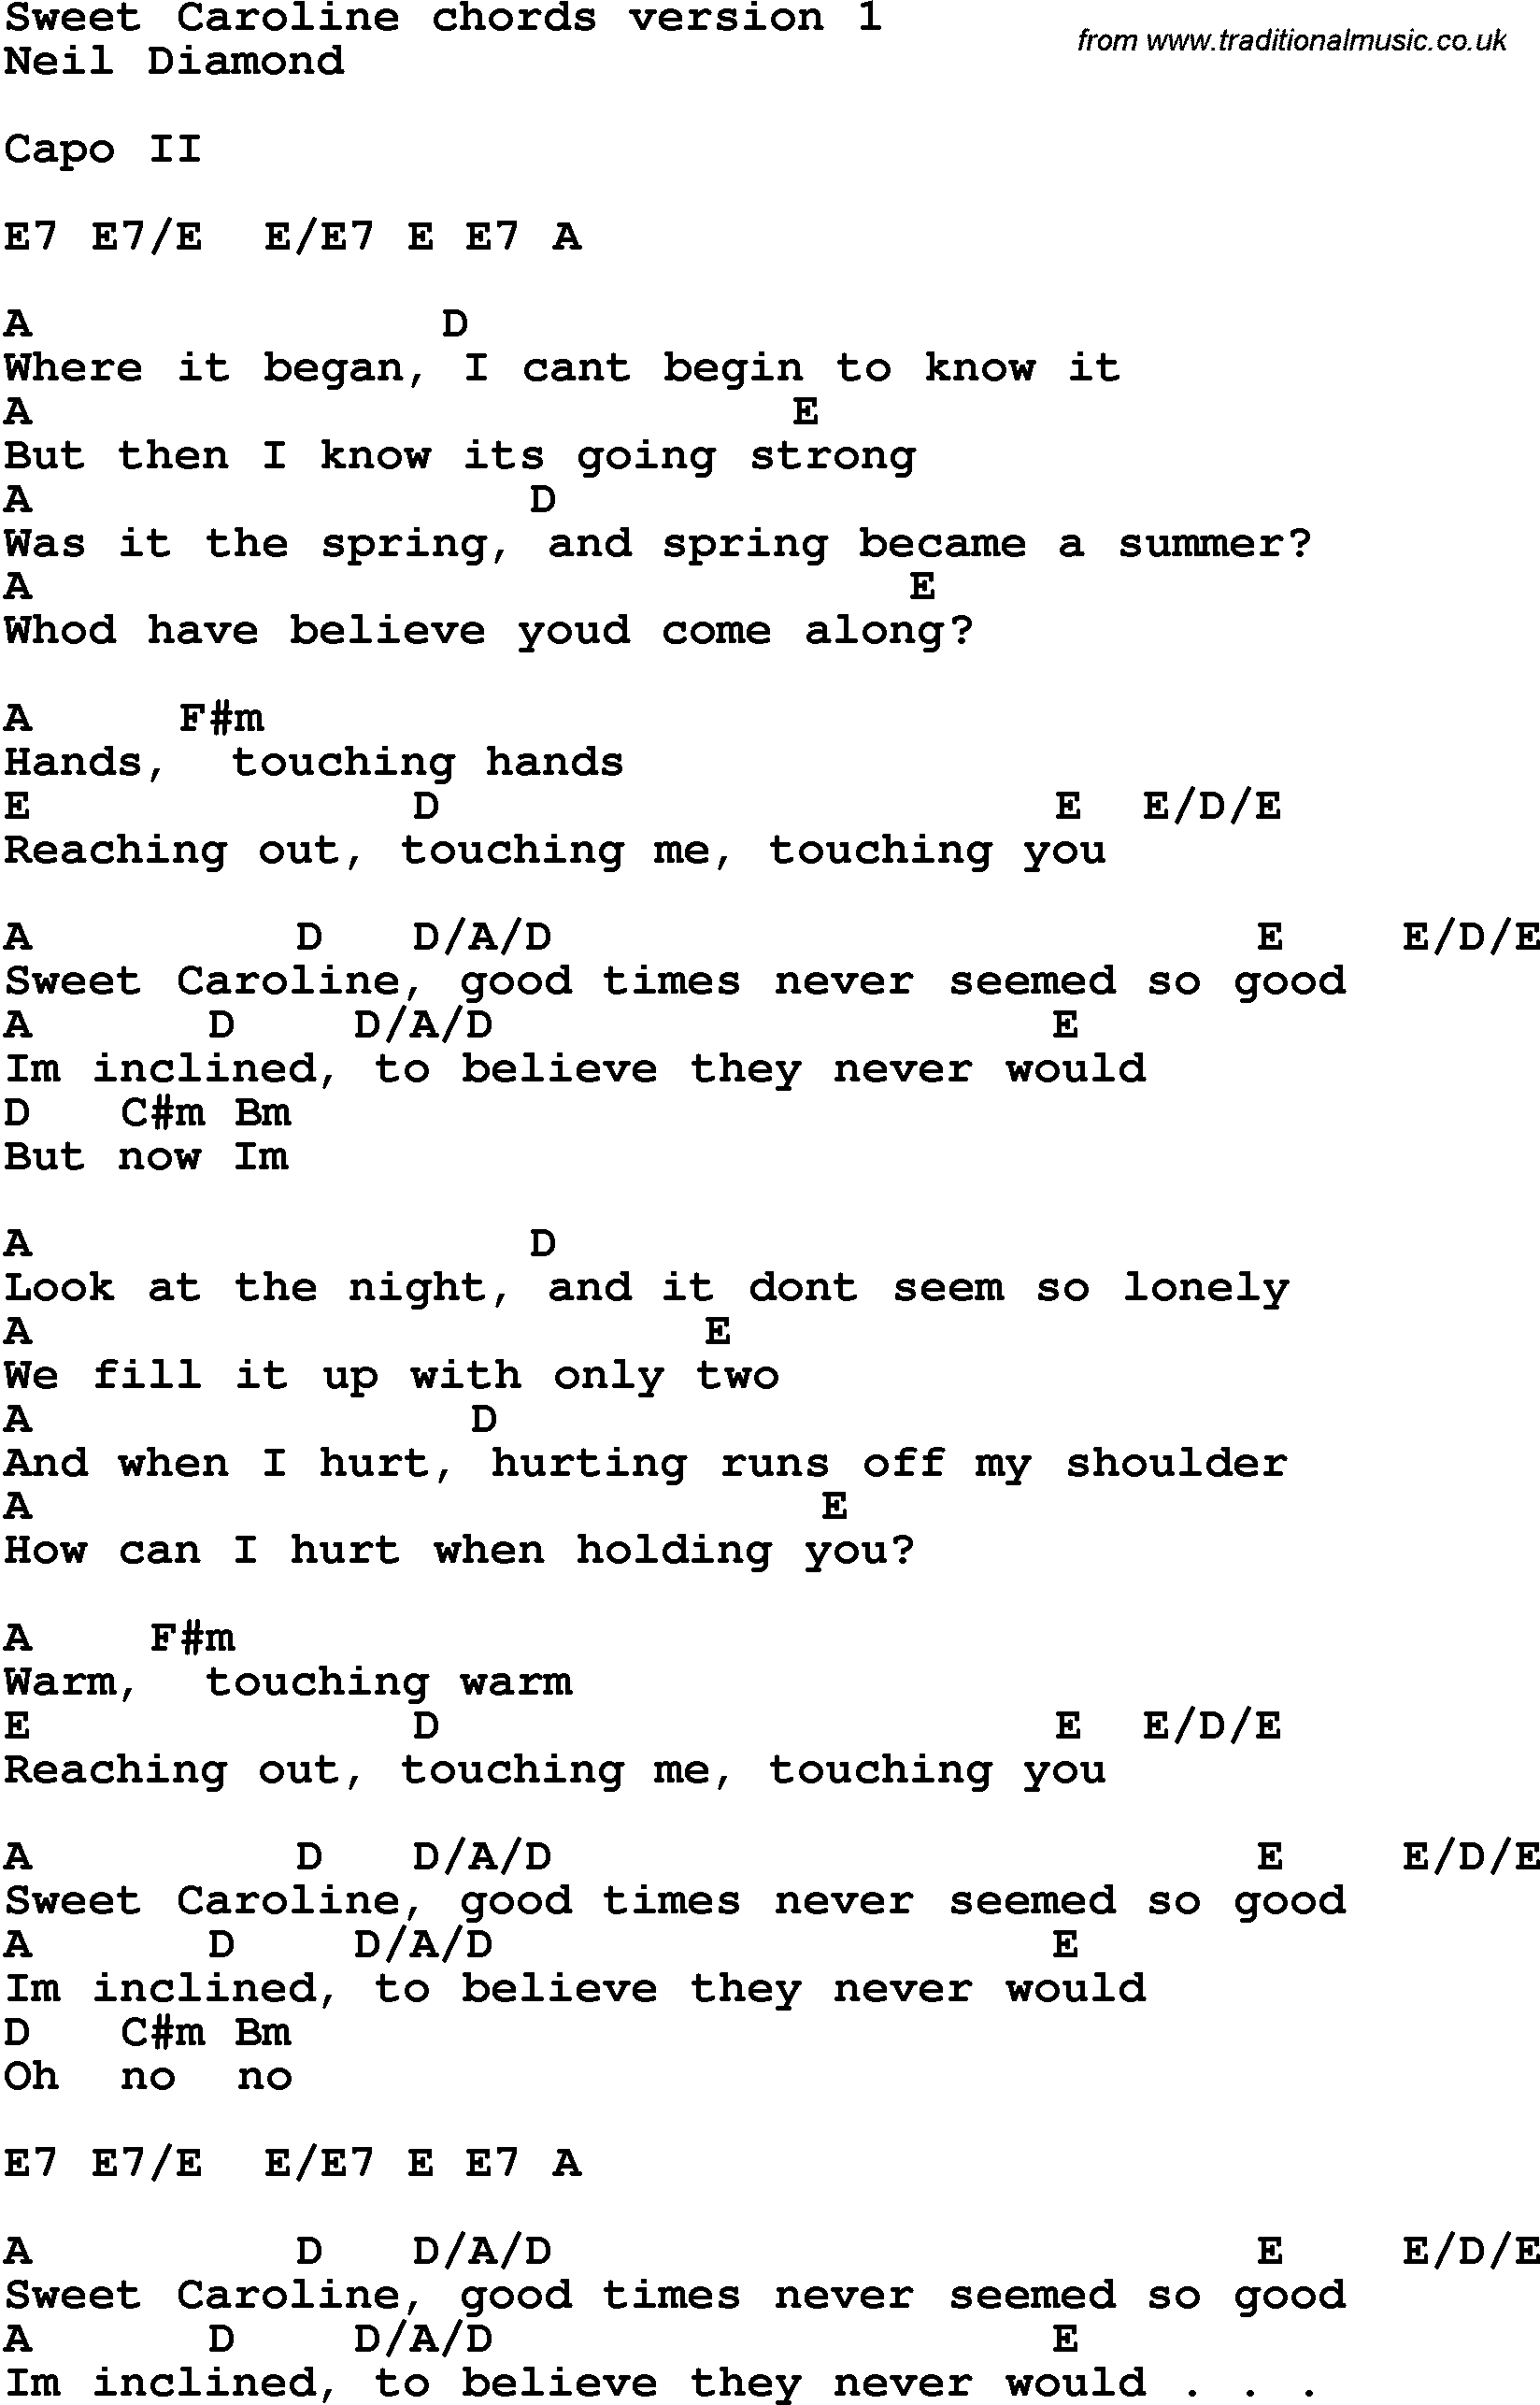 Song Lyrics With Guitar Chords For Sweet Caroline